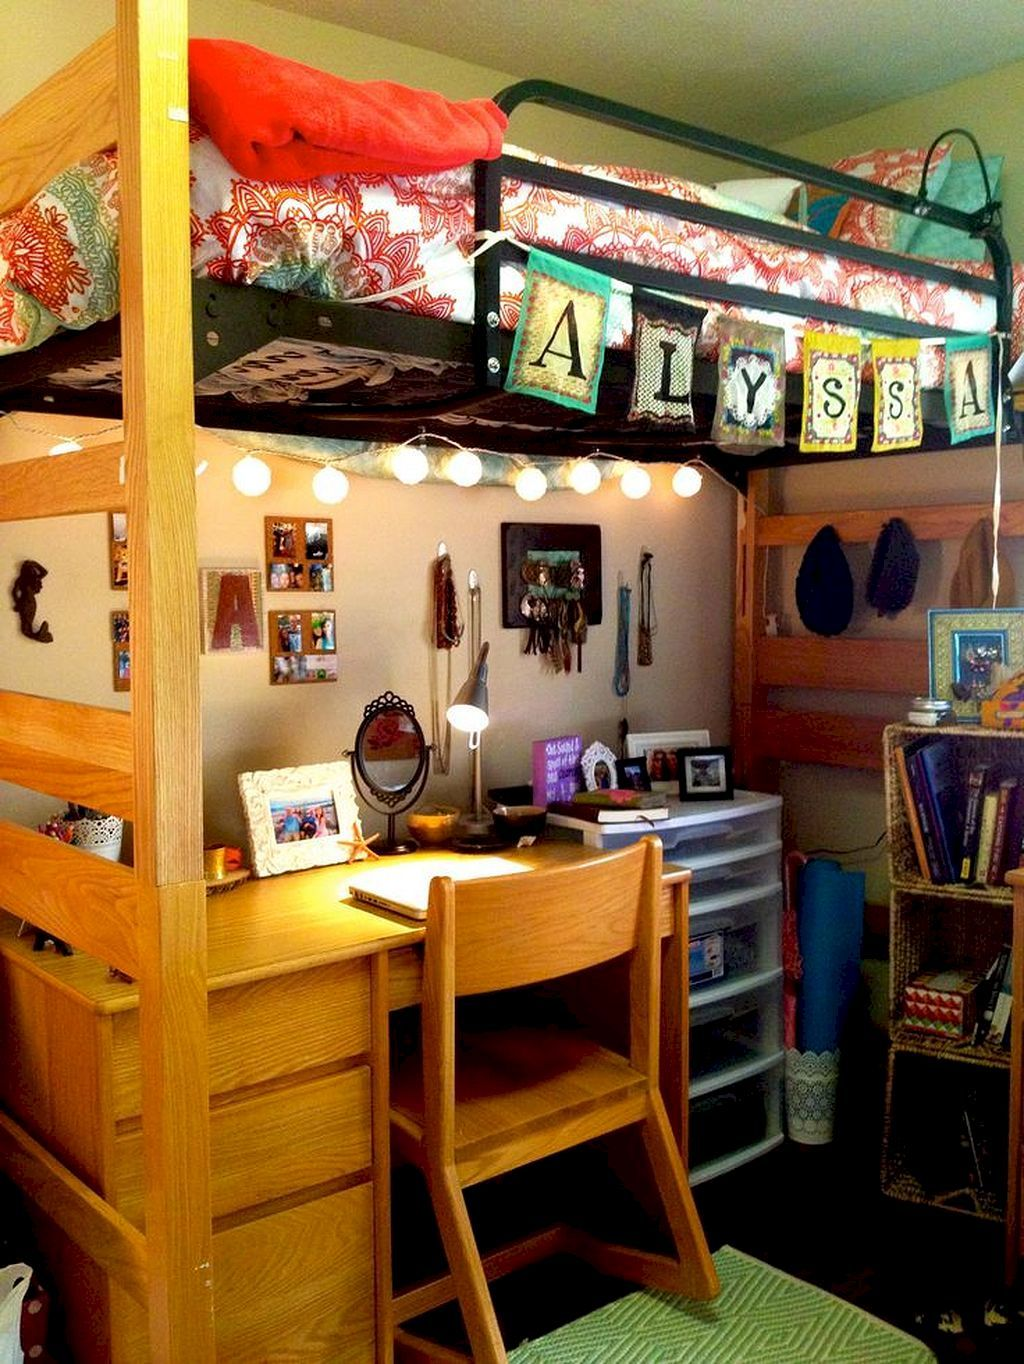 100 Cute Loft Beds College Dorm Room Design Ideas For Roomadness